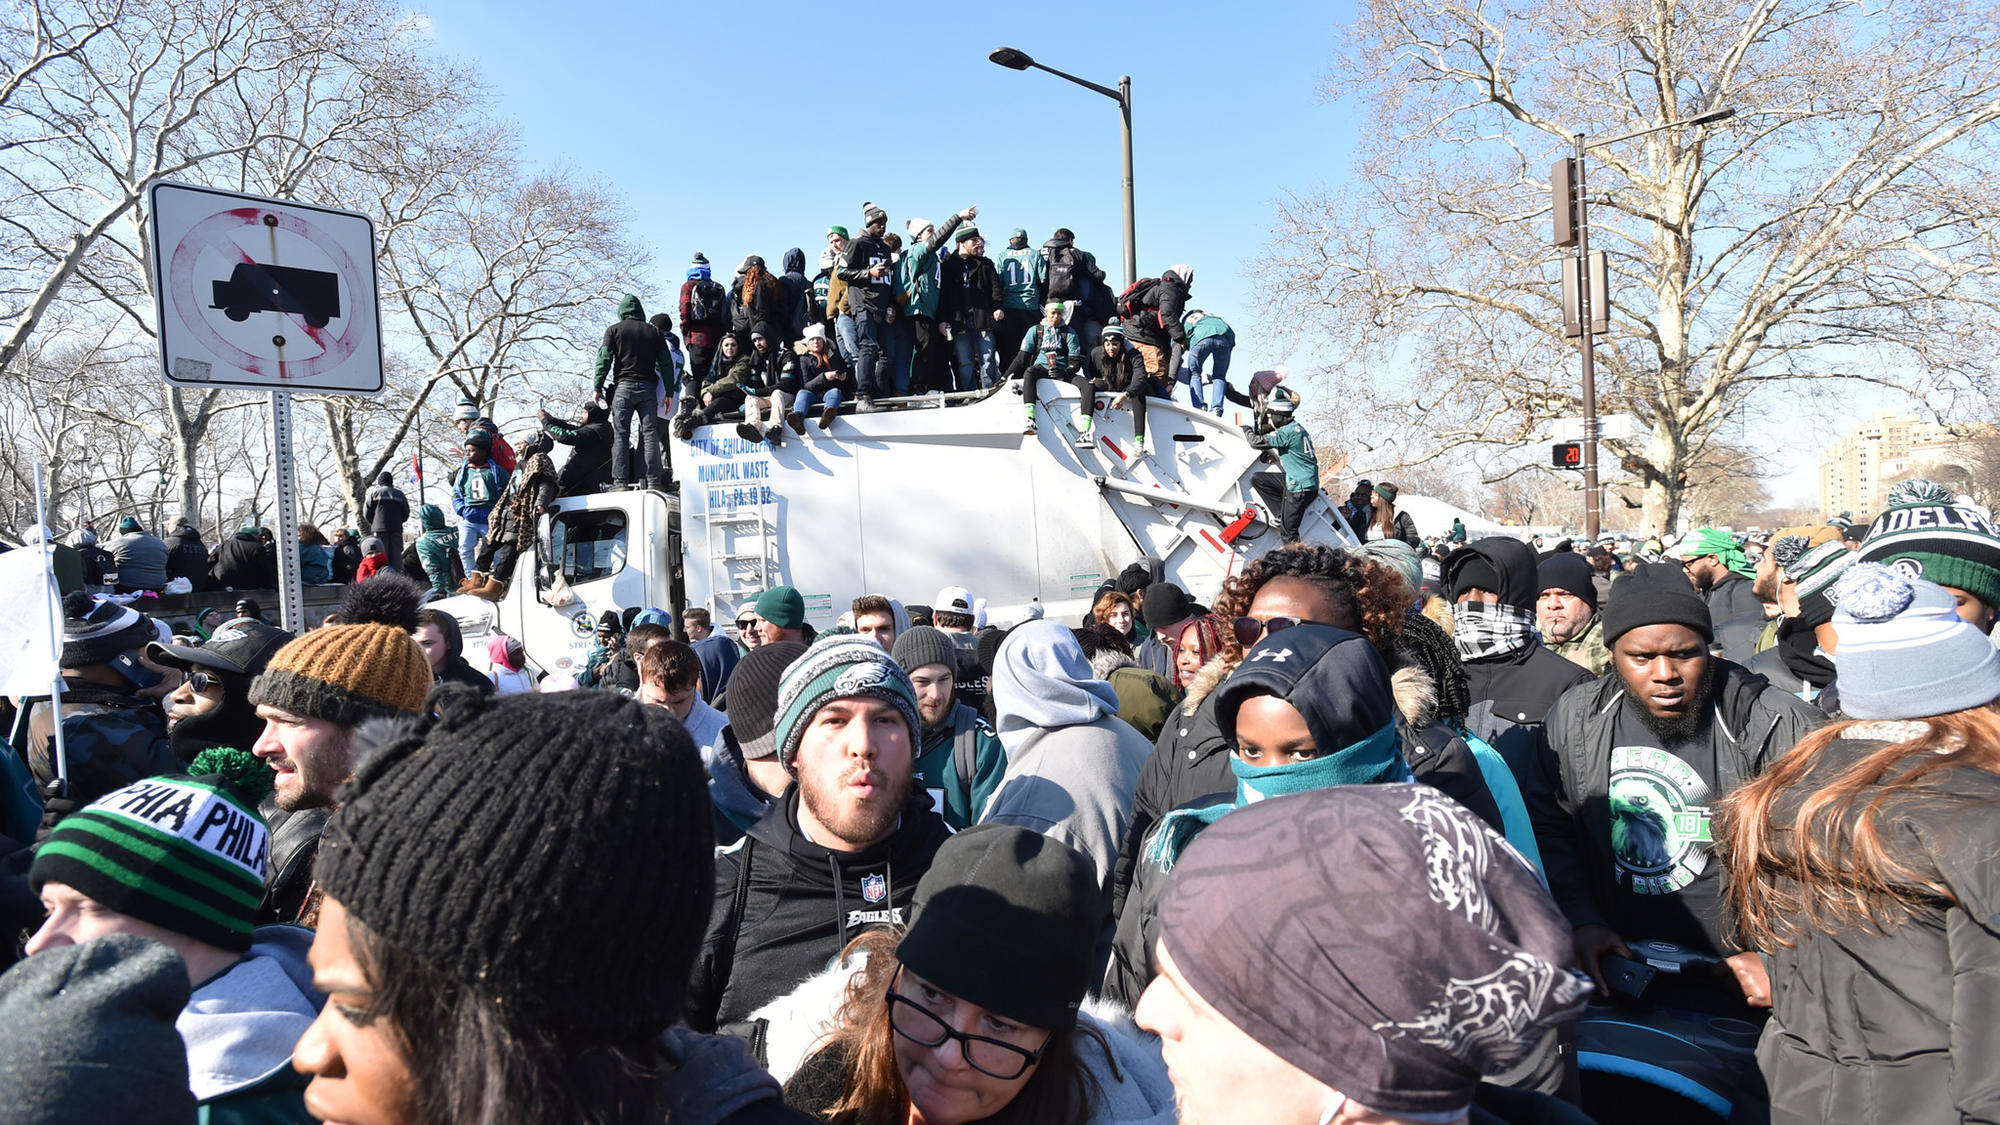 Eagles Fans Go Wild At Parade For Their Super Bowl Champs